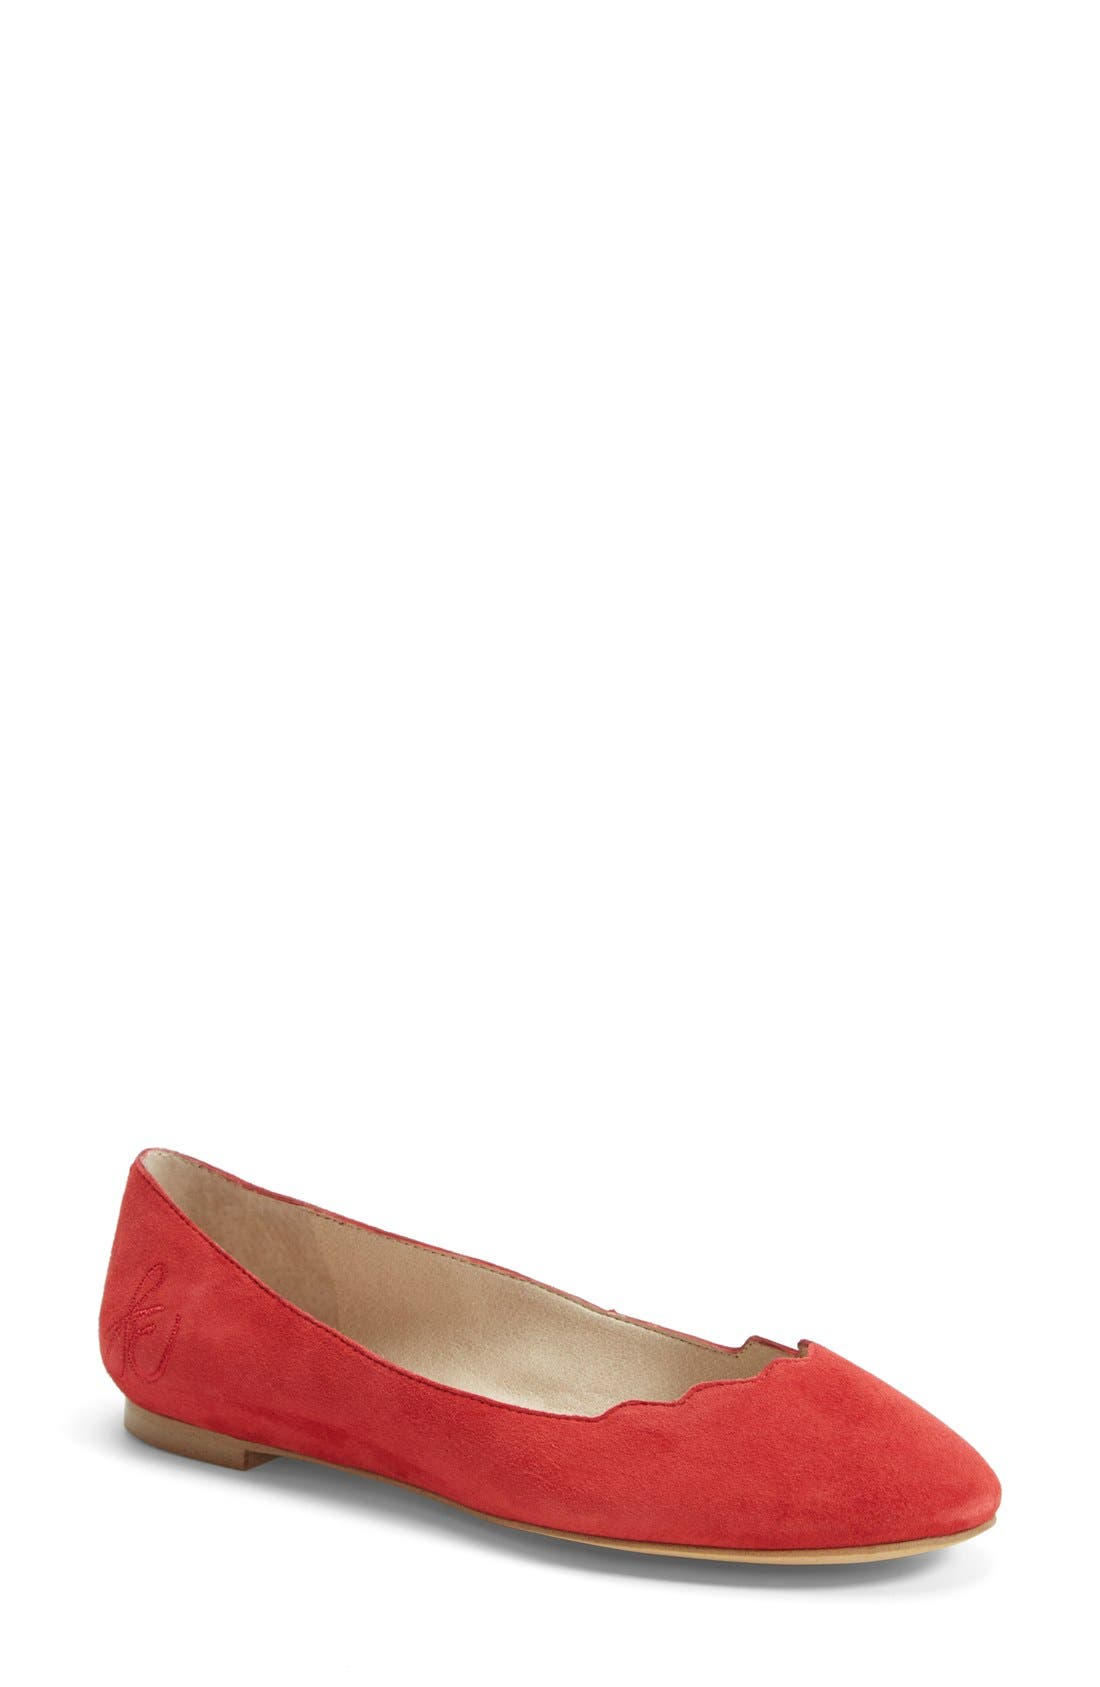 Alternate Image 1 Selected - Sam Edelman 'Alaine' Scalloped Topline Flat (Women)